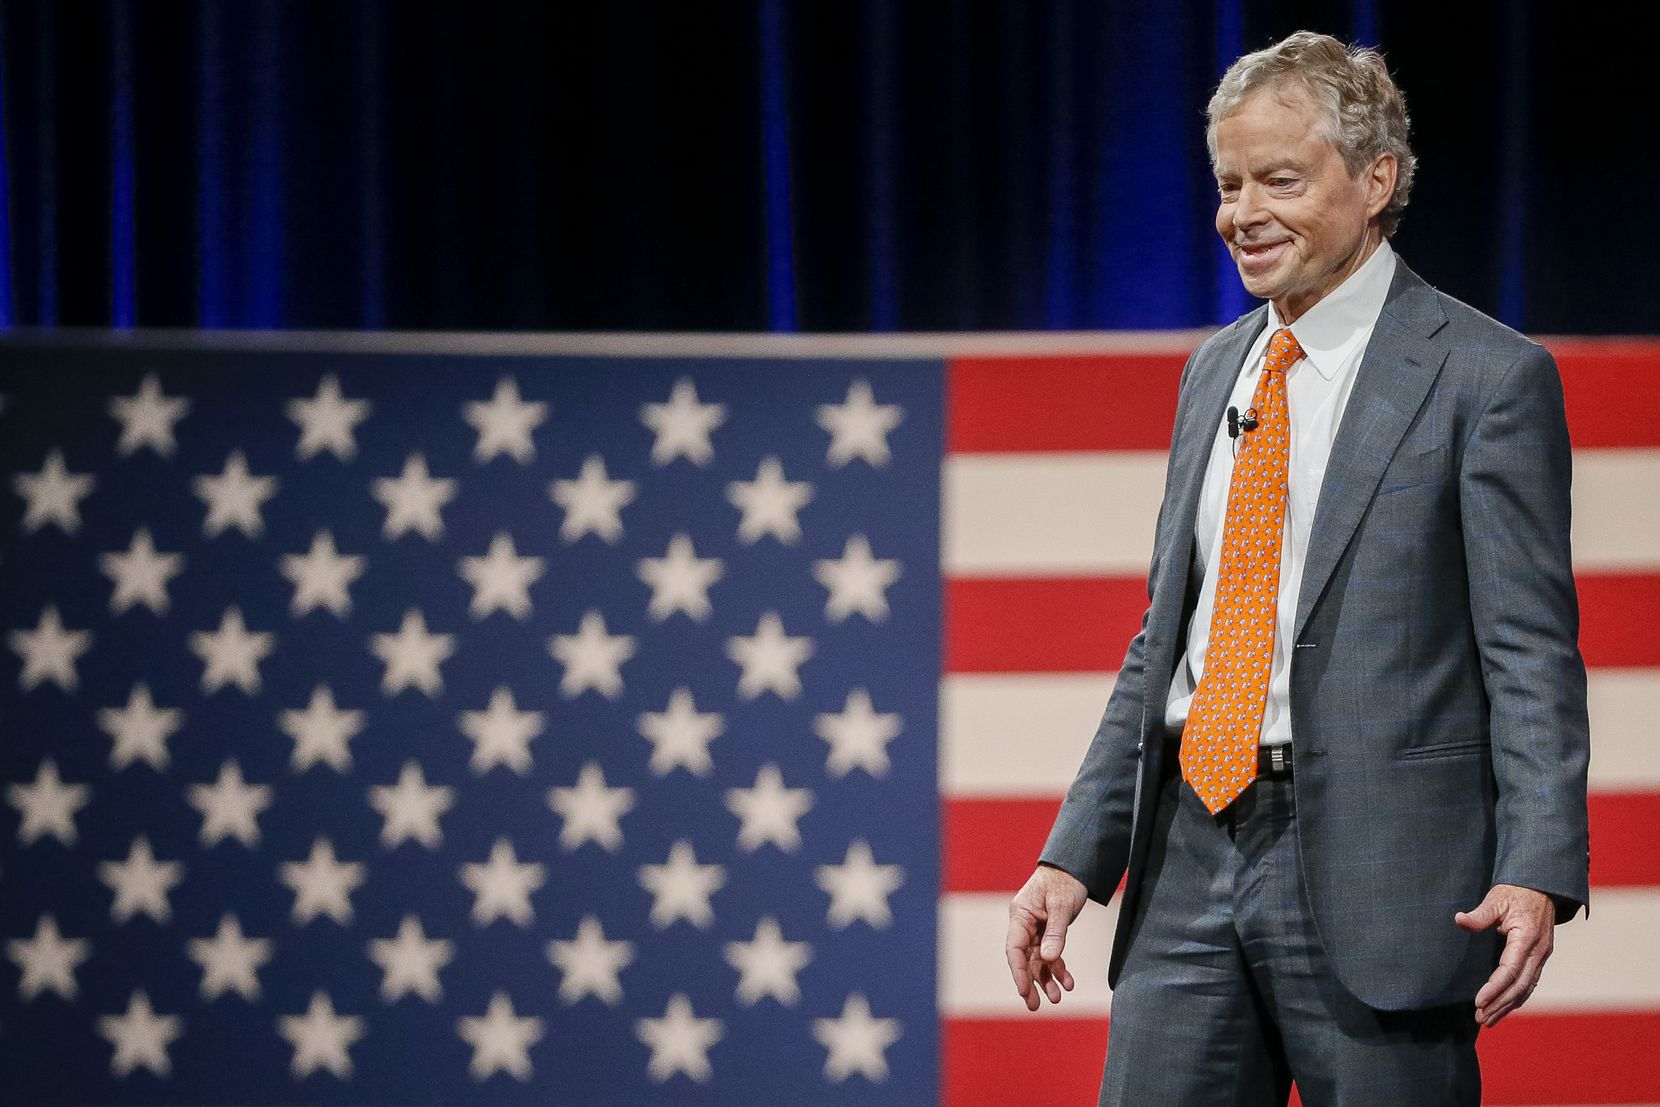 Former Texas state Sen. Don Huffines gives remarks at the Conservative Political Action Conference in Dallas.